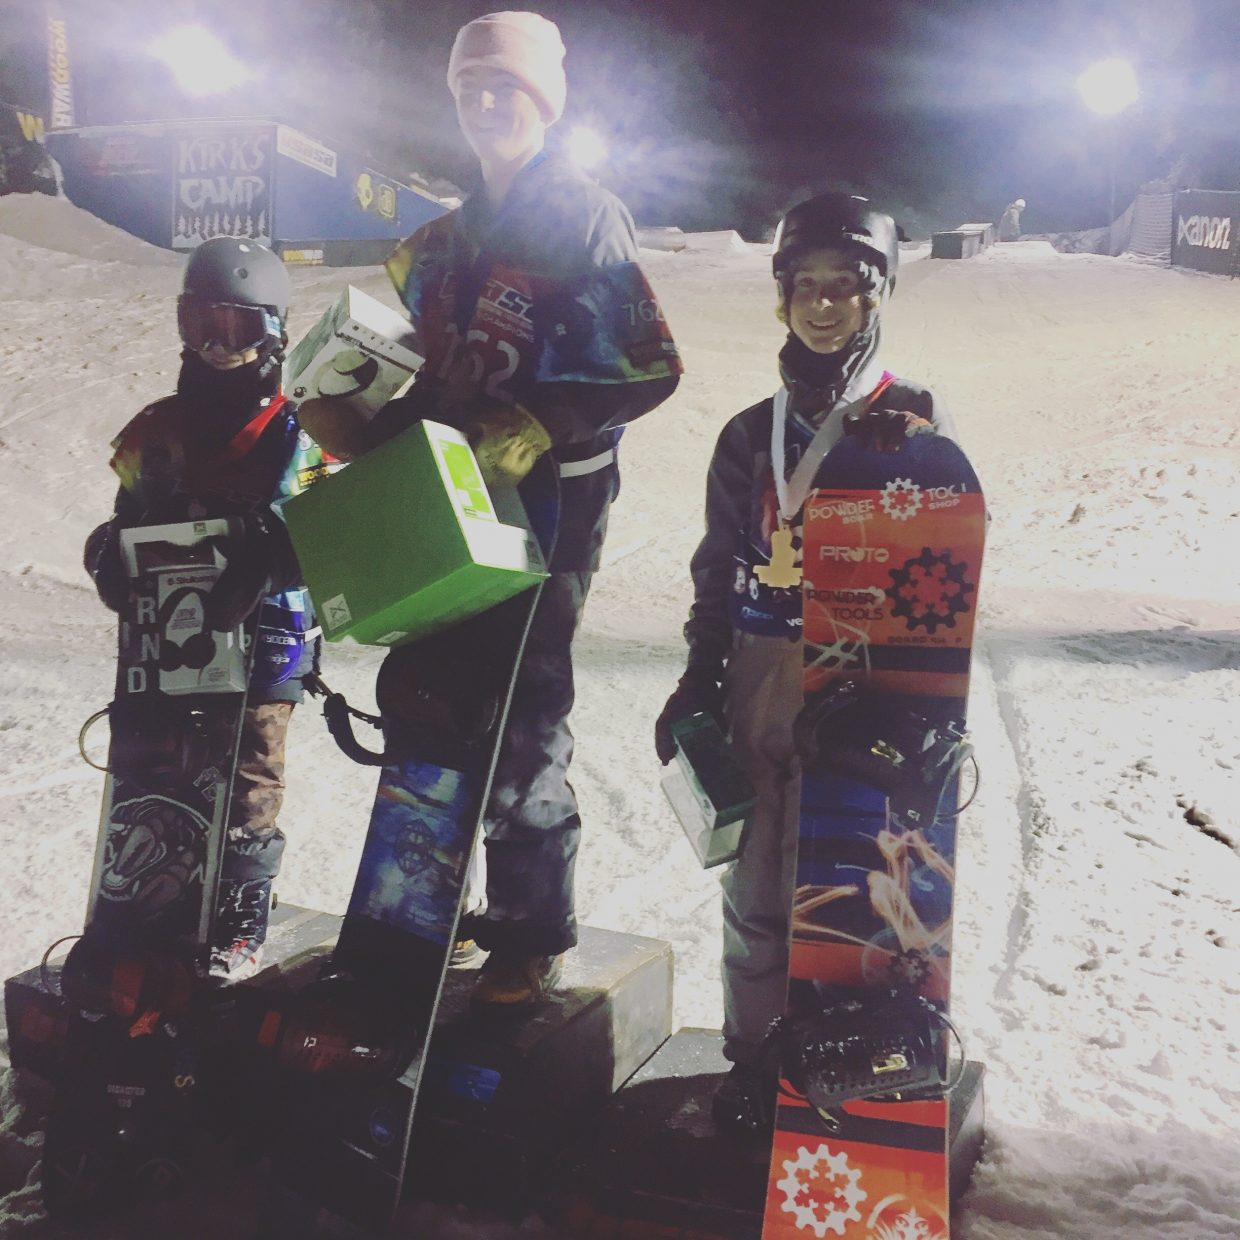 Marty Boyd placed third in a rail jam at USASA nationals.